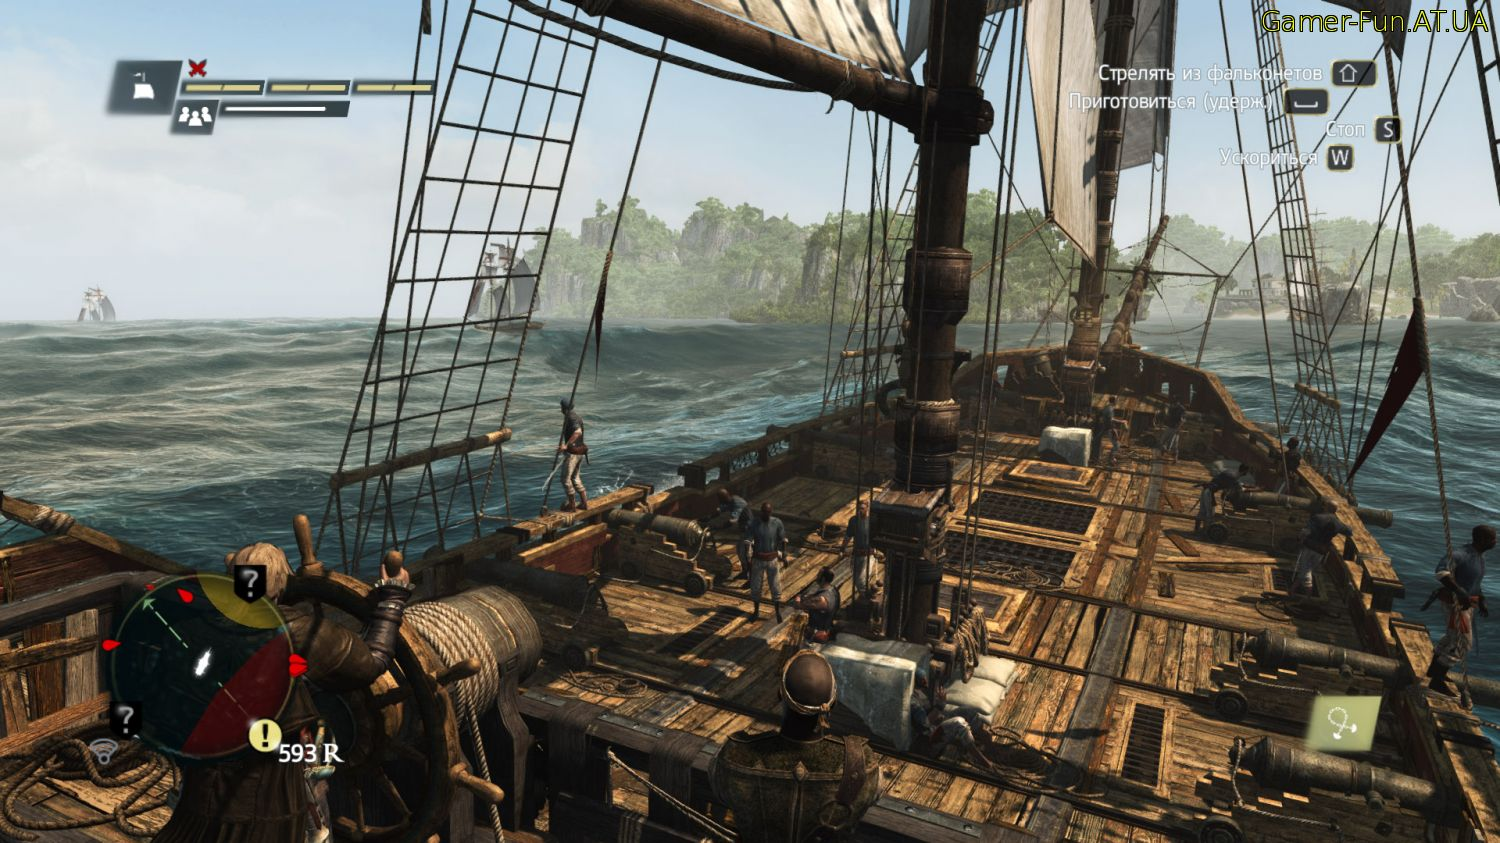 Assassin's Creed IV: Black Flag [v 1.06] (2013) Русская версия [RePack], скриншоты Assassin's Creed IV: Black Flag [v 1.06] (2013) Русская версия [RePack], скачать Assassin's Creed IV: Black Flag [v 1.06] (2013) Русская версия [RePack], картинки Assassin's Creed IV: Black Flag [v 1.06] (2013) Русская версия [RePack], постер Assassin's Creed IV: Black Flag [v 1.06] (2013) Русская версия [RePack]